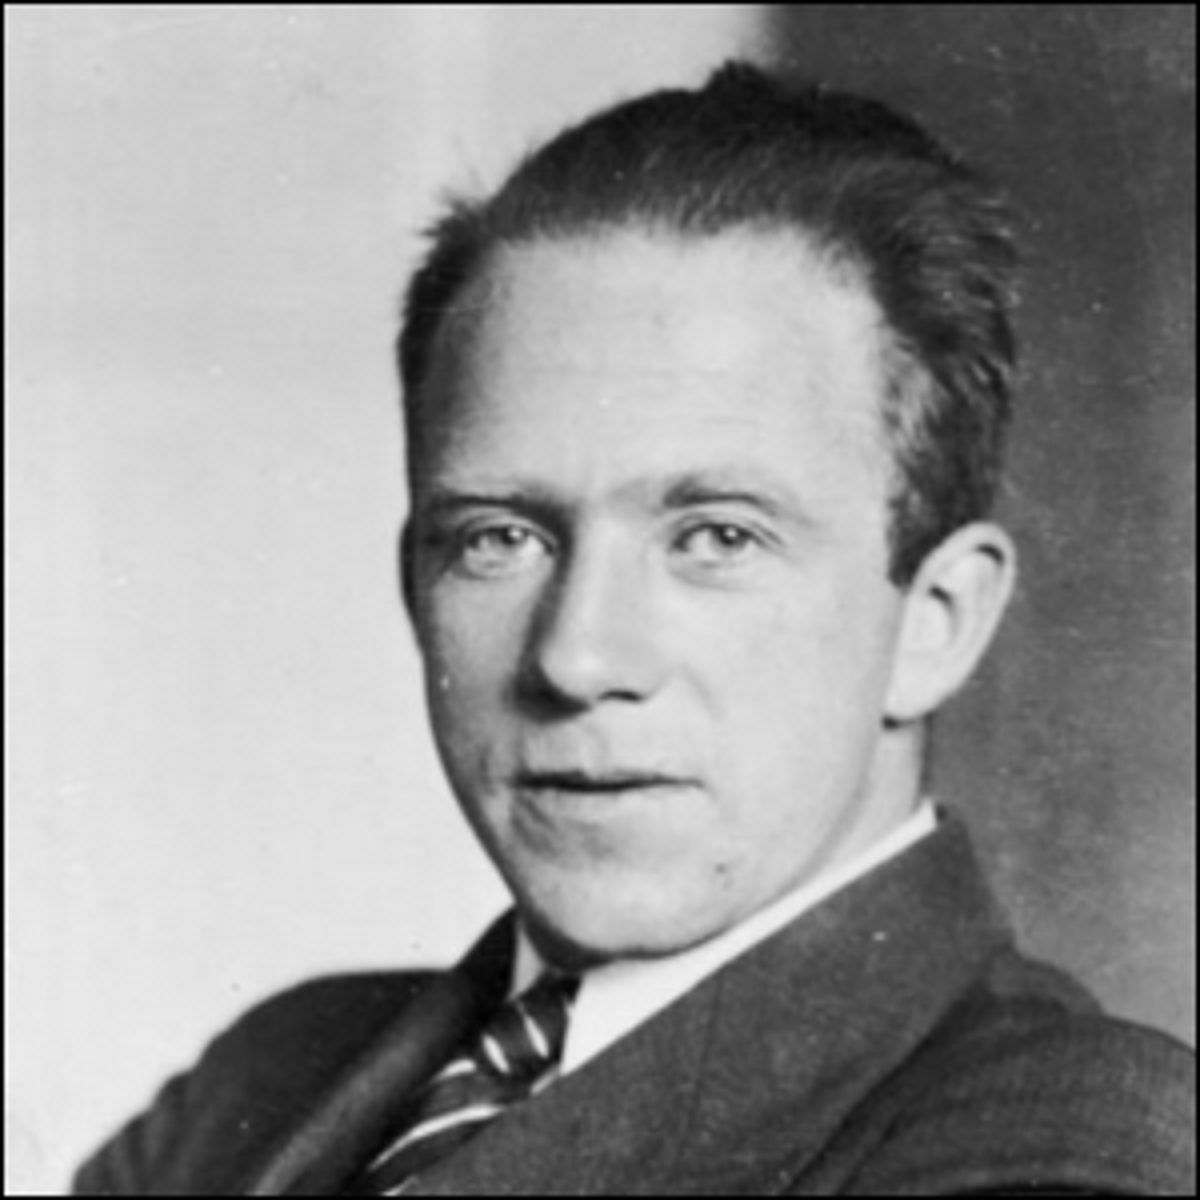 A 1933 photo of theoretical physicist Werner Heisenberg.